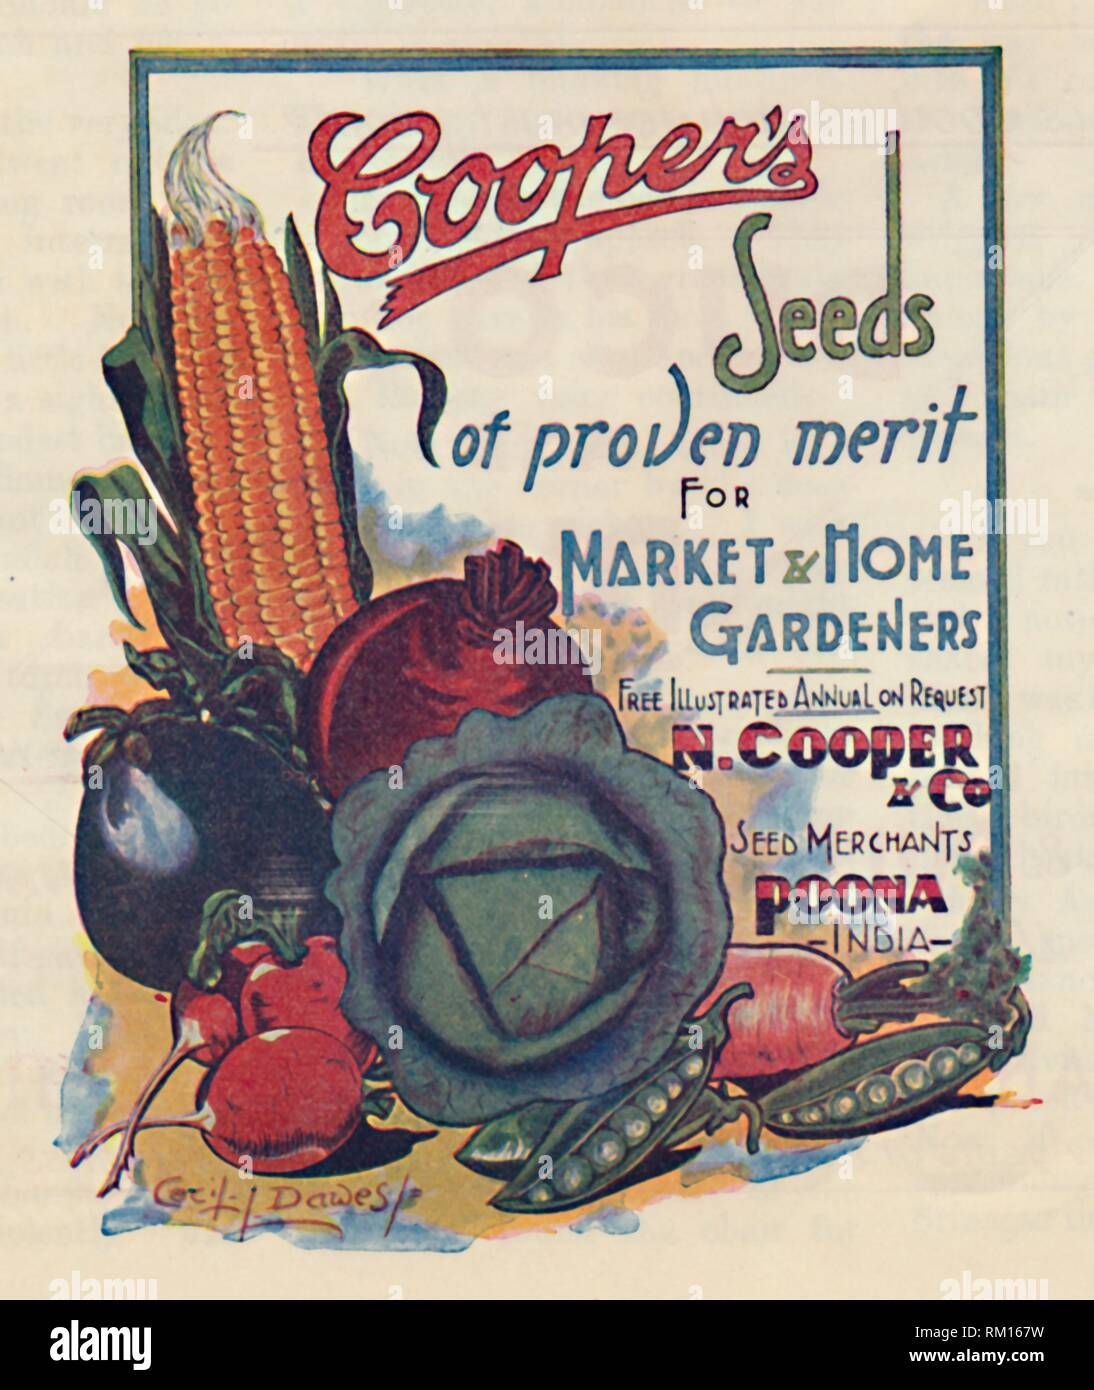 """Advertisement for Cooper's seeds, 1936. 'Cooper's Seeds of proven merit for Market & Home Gardeners'. Advertisement for vegetable seeds, aimed at the British colonial community, produced by N Cooper & Co, seed merchants in Poona, (modern-day Pune), India. From """"The Civil and Military Gazette"""" Annual, 1936. [India, 1936] - Stock Image"""